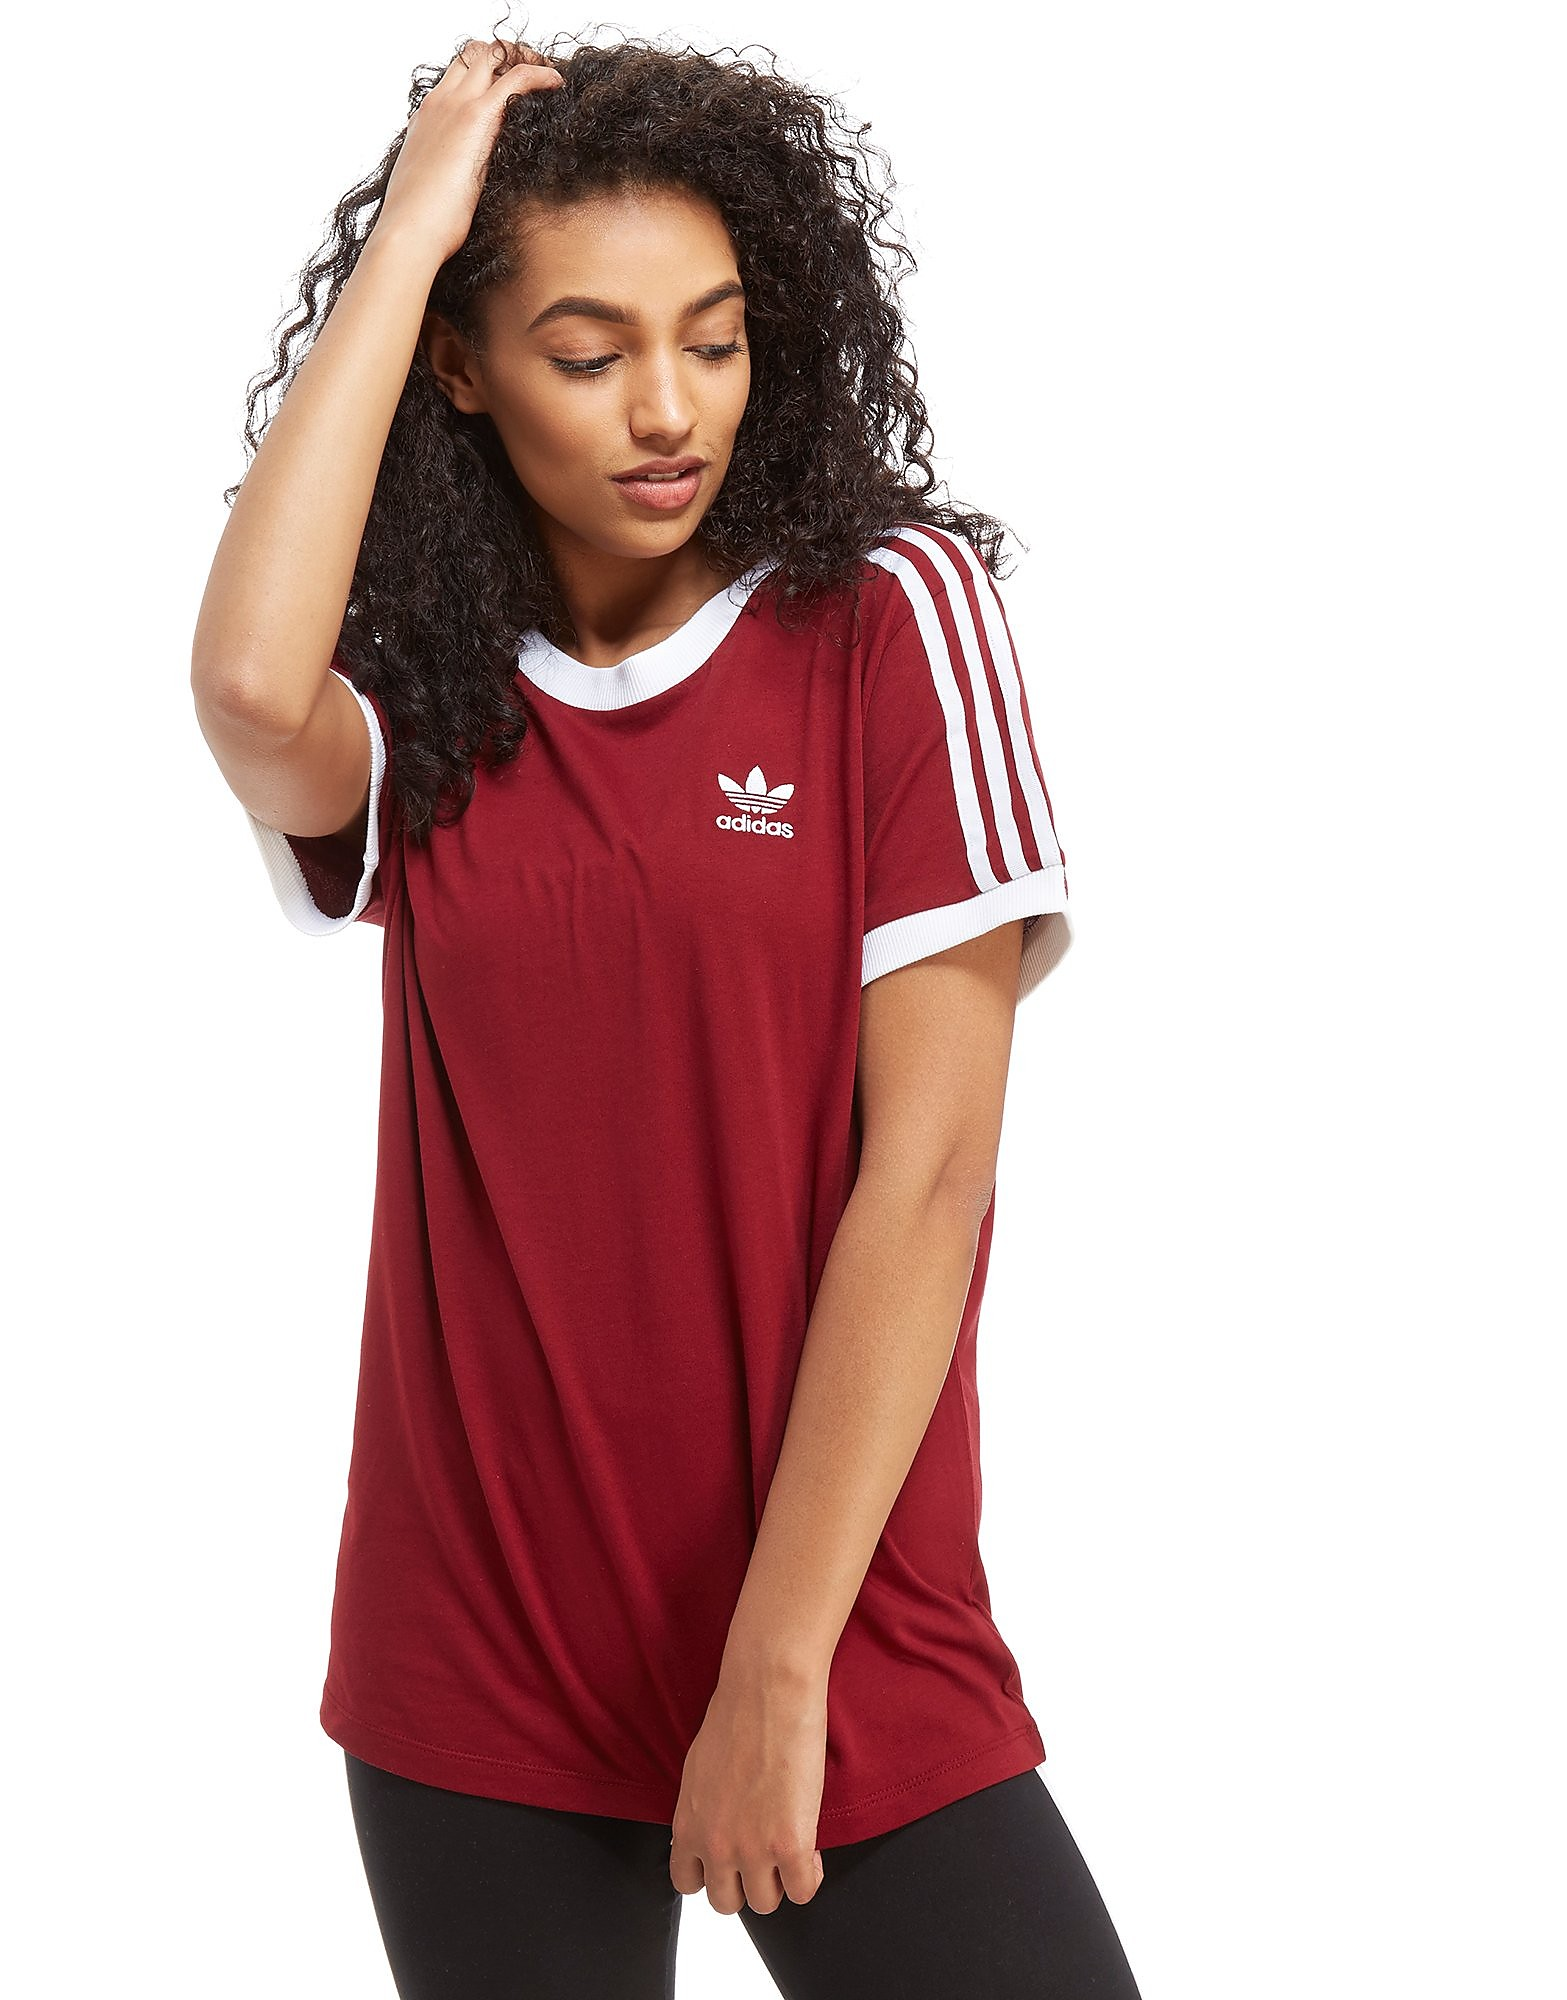 adidas Originals camiseta 3-Stripes California